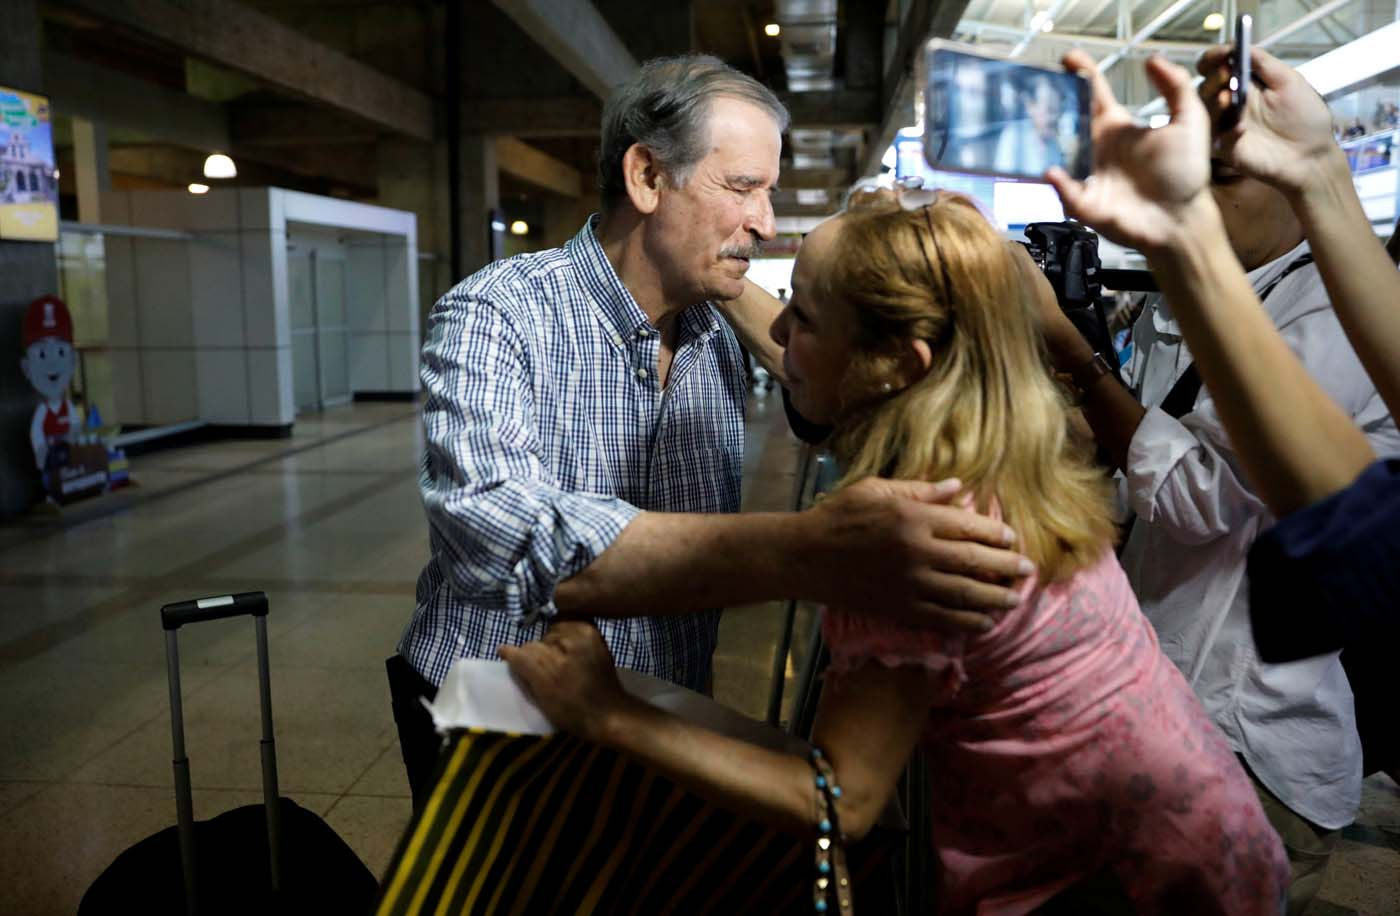 A woman greets former president of Mexico Vicente Fox as he arrives at Caracas airport ahead of an unofficial referendum called by the opposition against Venezuelan President Nicolas Maduro's government in Venezuela July 15, 2017. REUTERS/Andres Martinez Casares